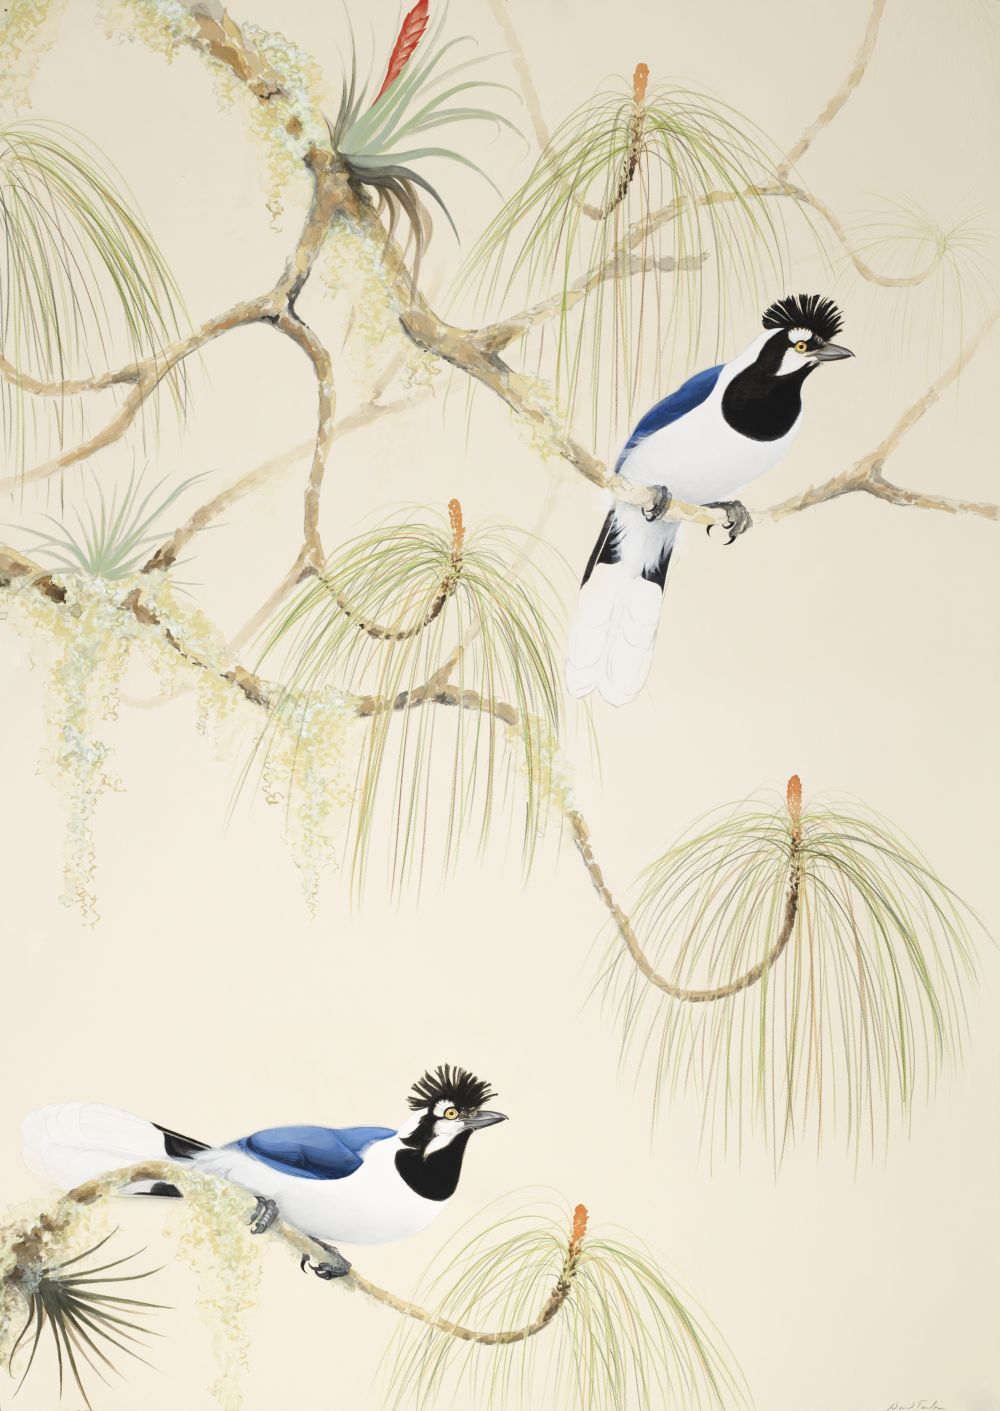 Tufted Jays, 2008, 44x30, gouache, watercolor, colored pencil and graphite on paper